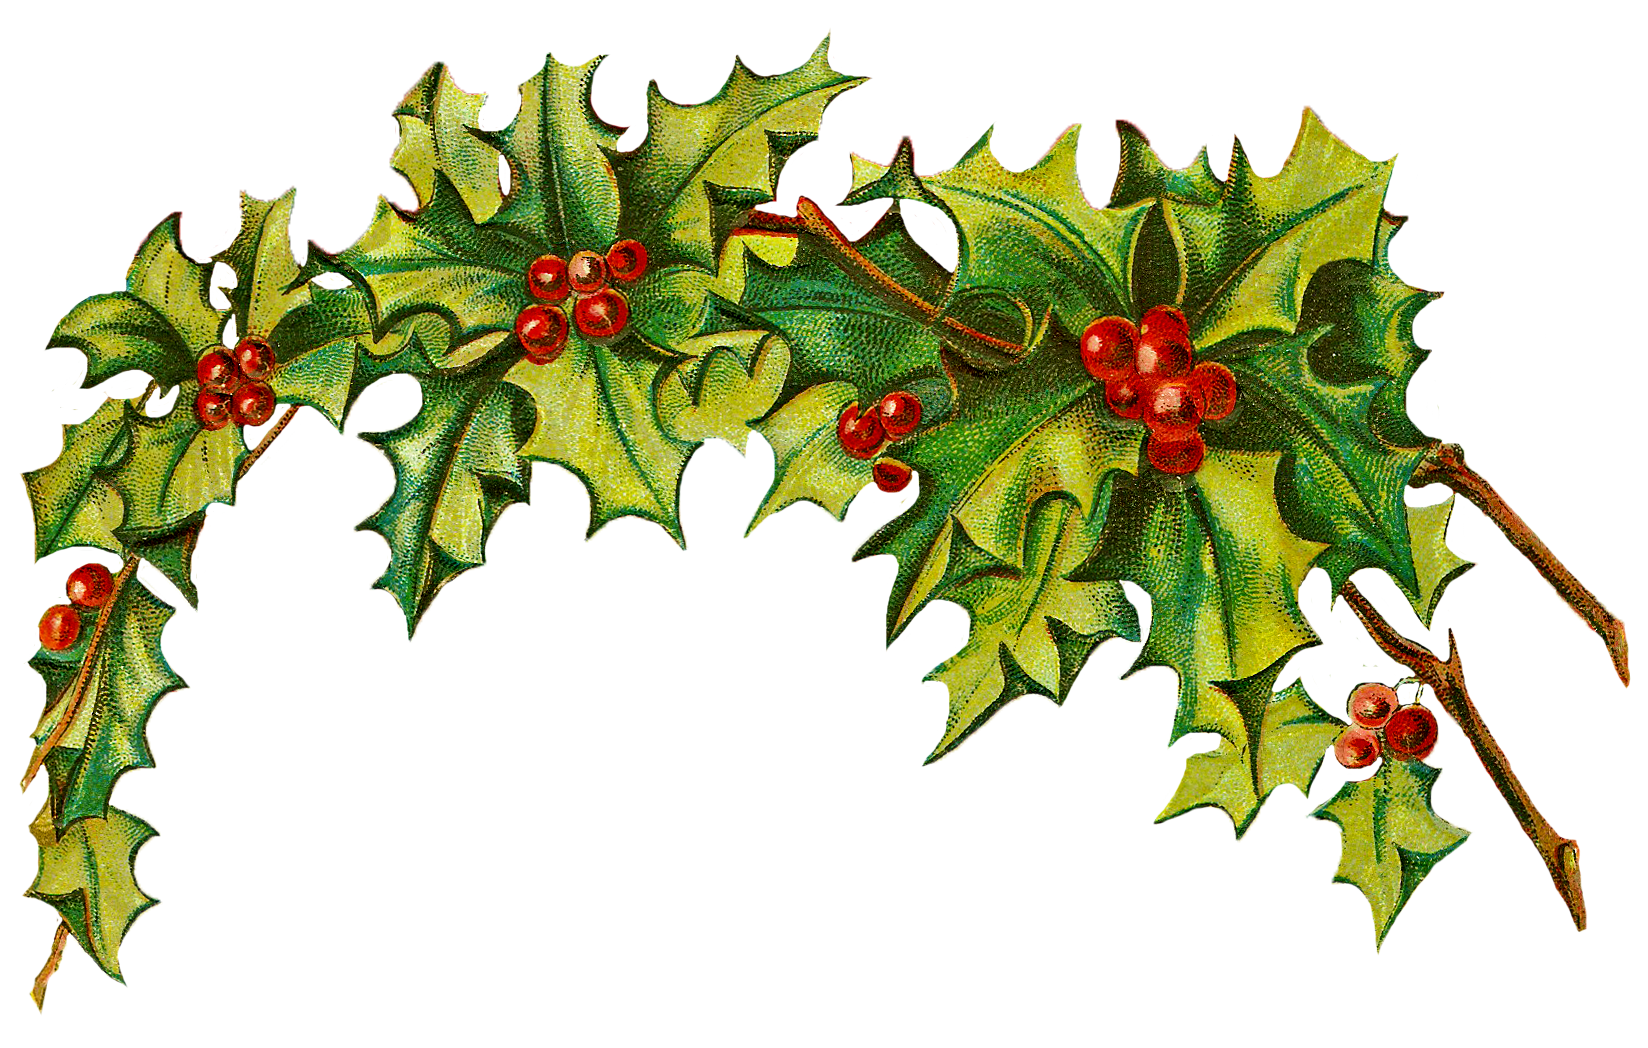 1648x1048 Merry Christmas Clipart Holly